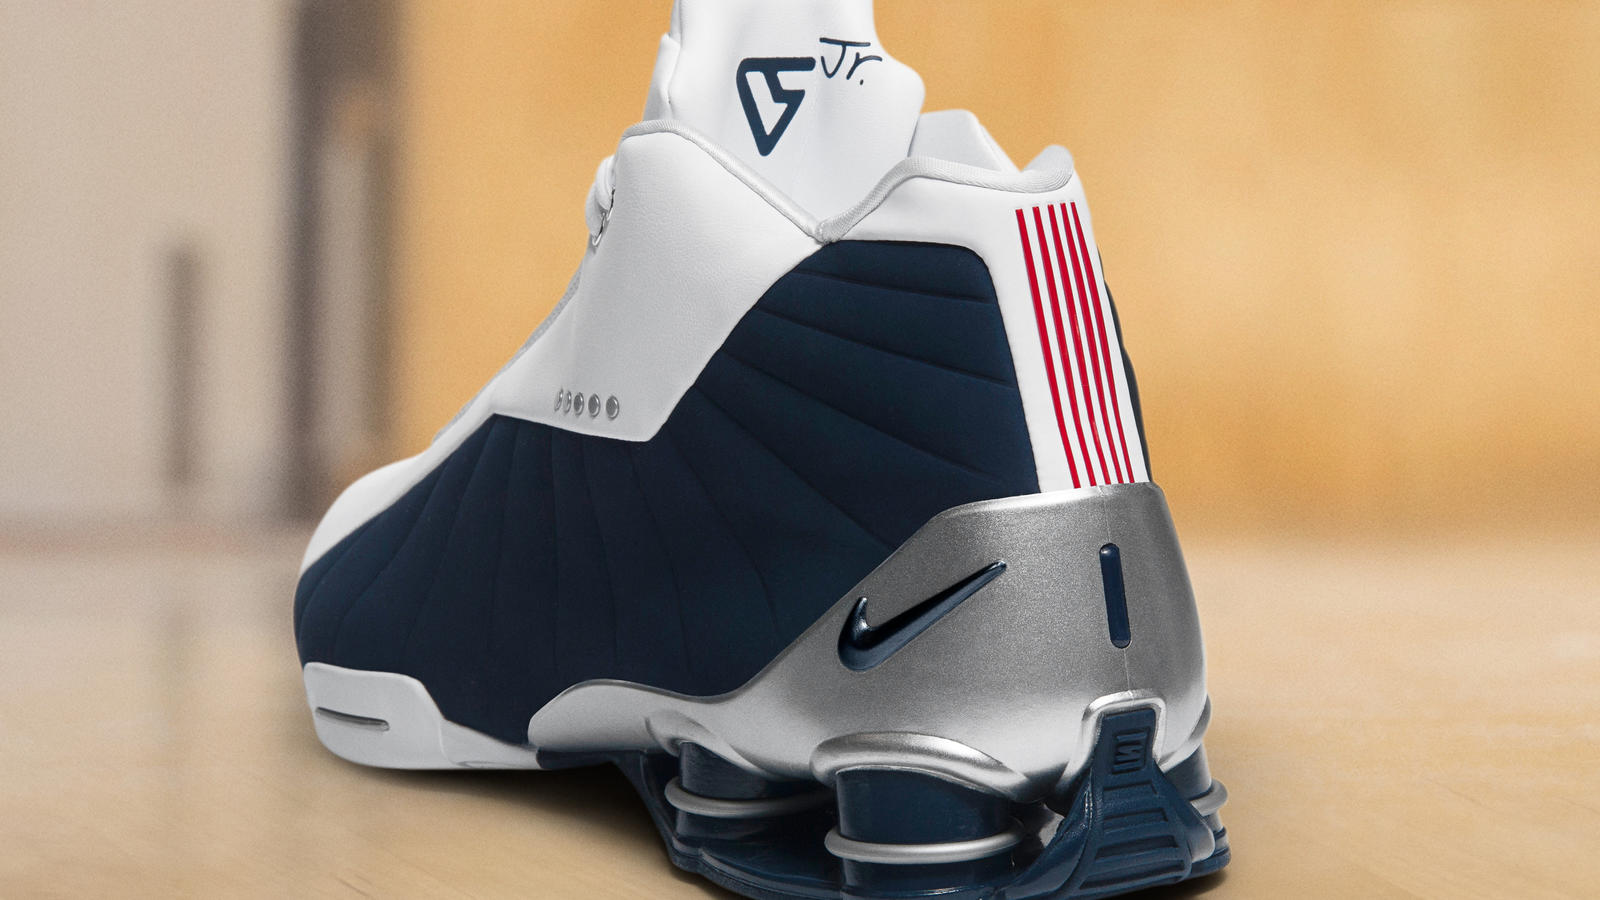 721f0b7193a526 Vince Carter Remembers the Nike Shox BB4 - Nike News